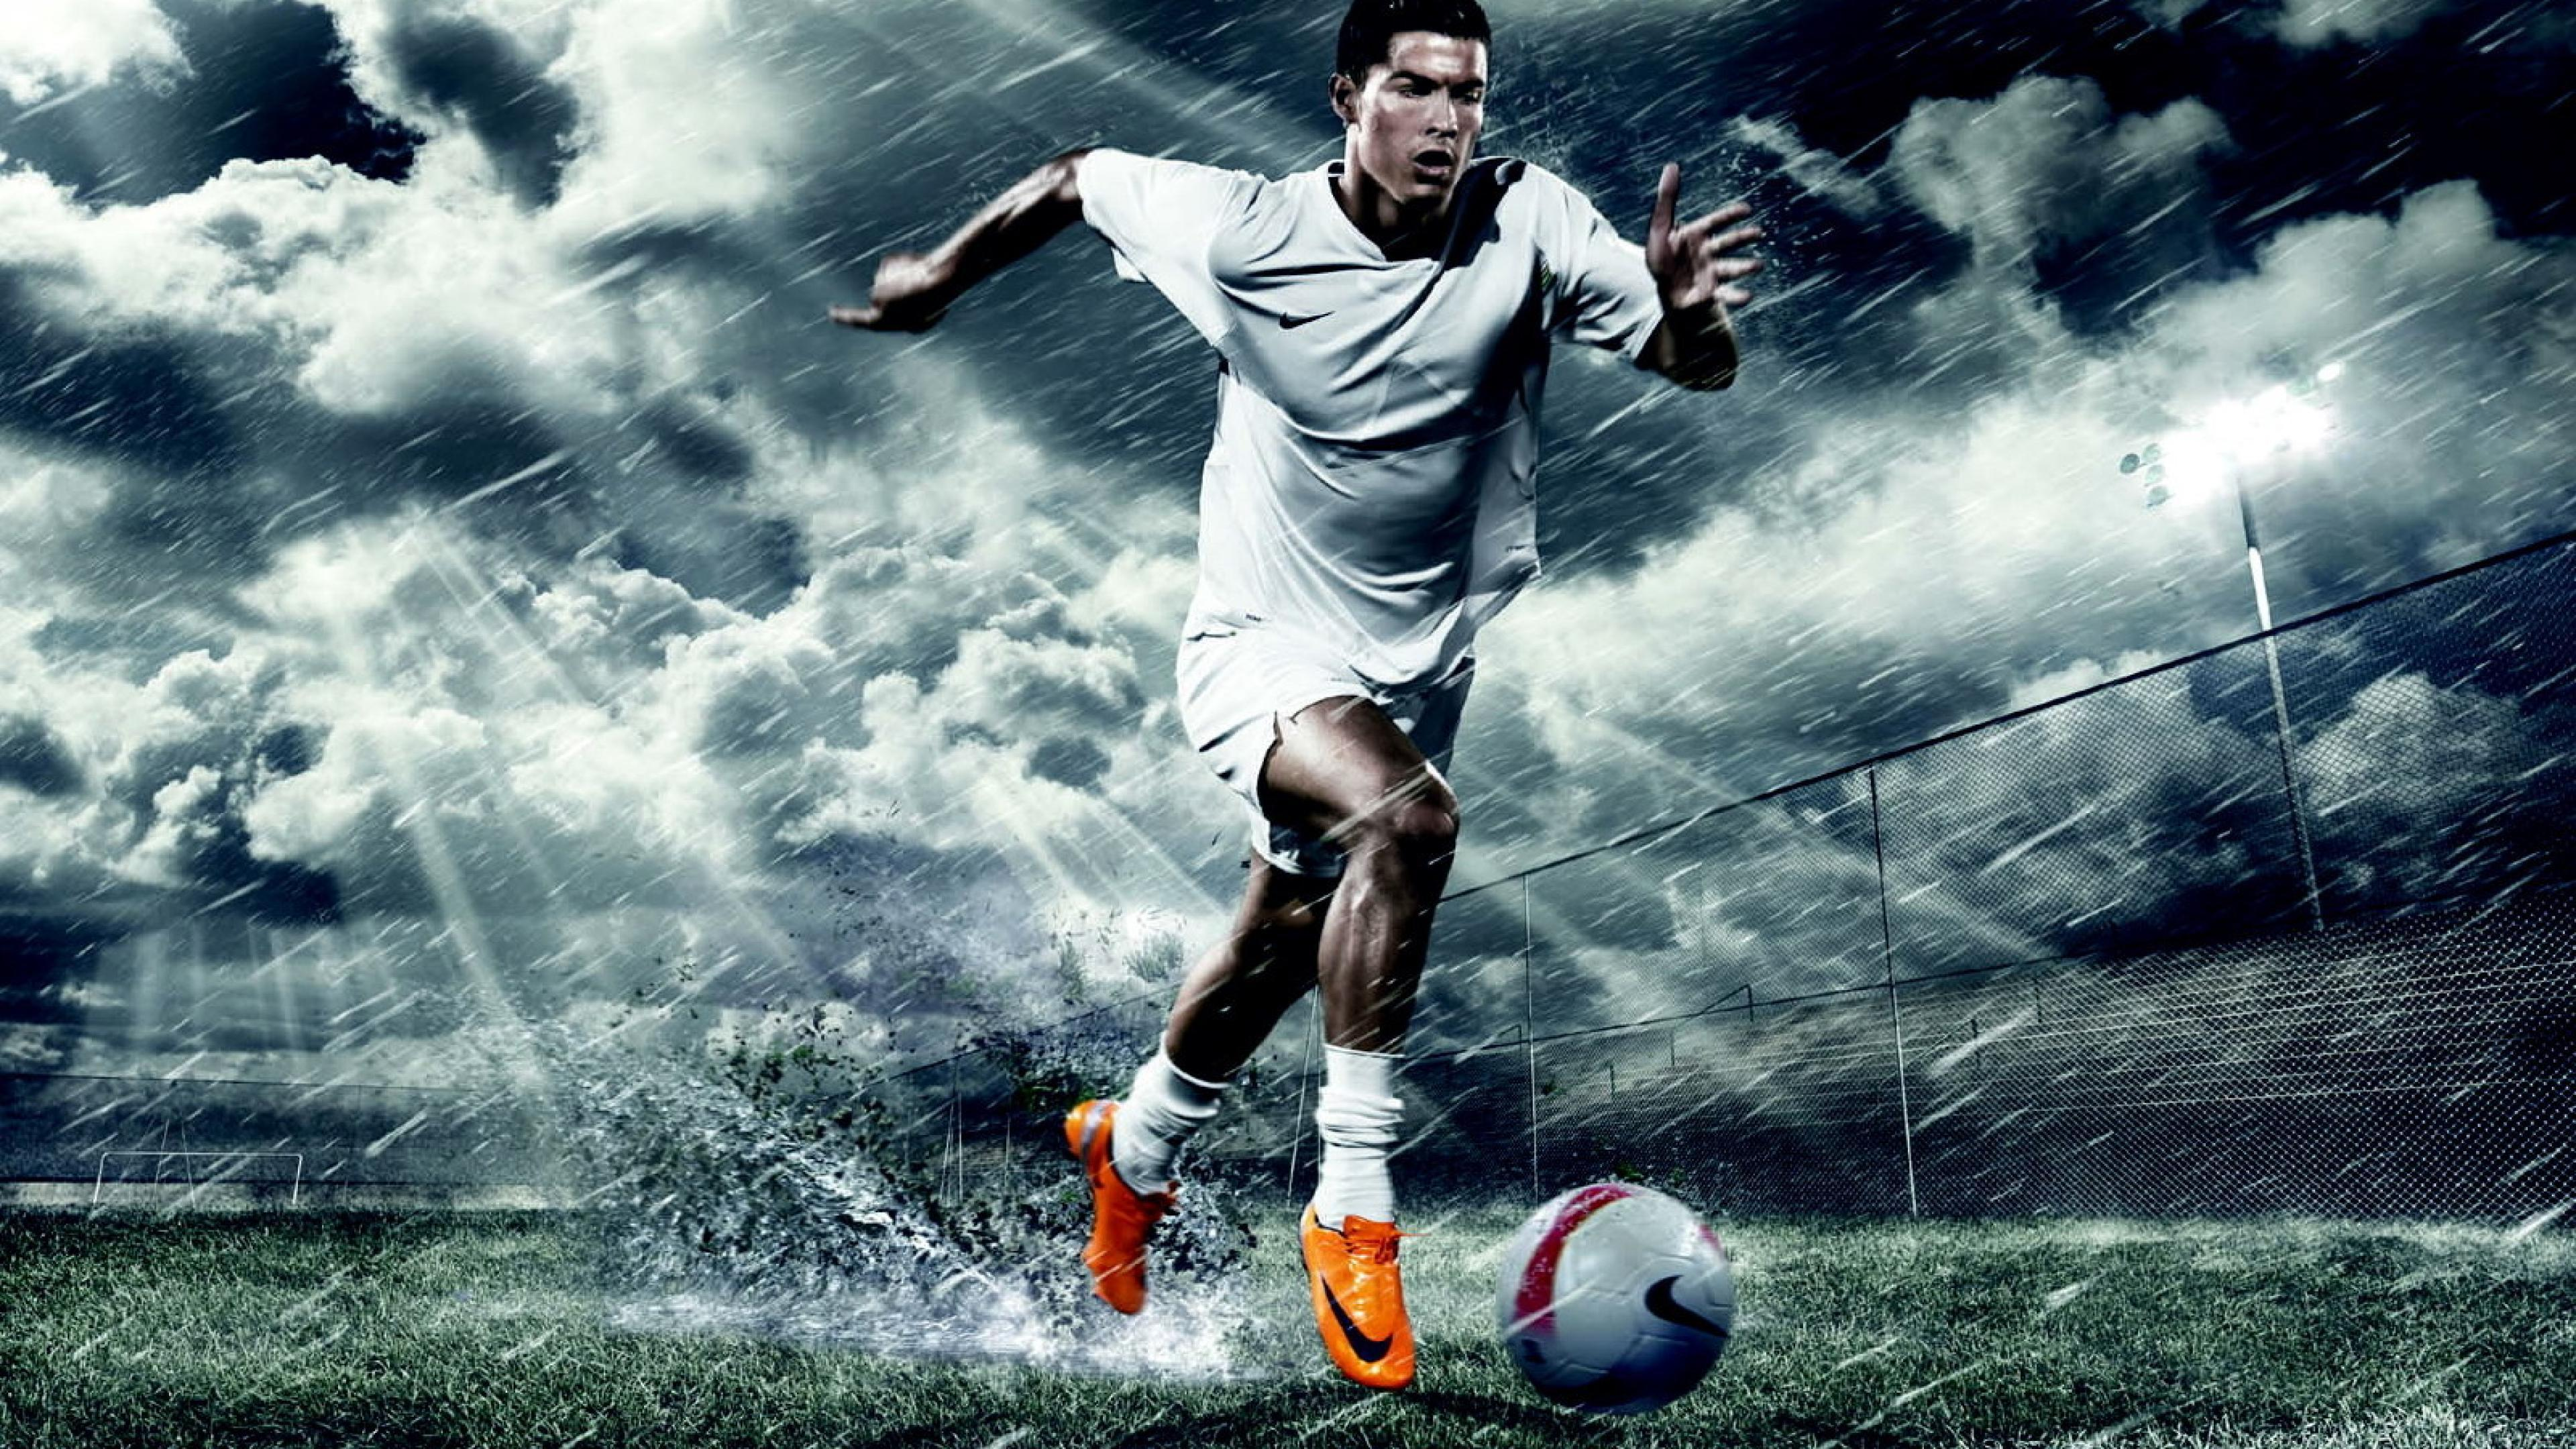 cool soccer wallpapers - HD 3840×2160